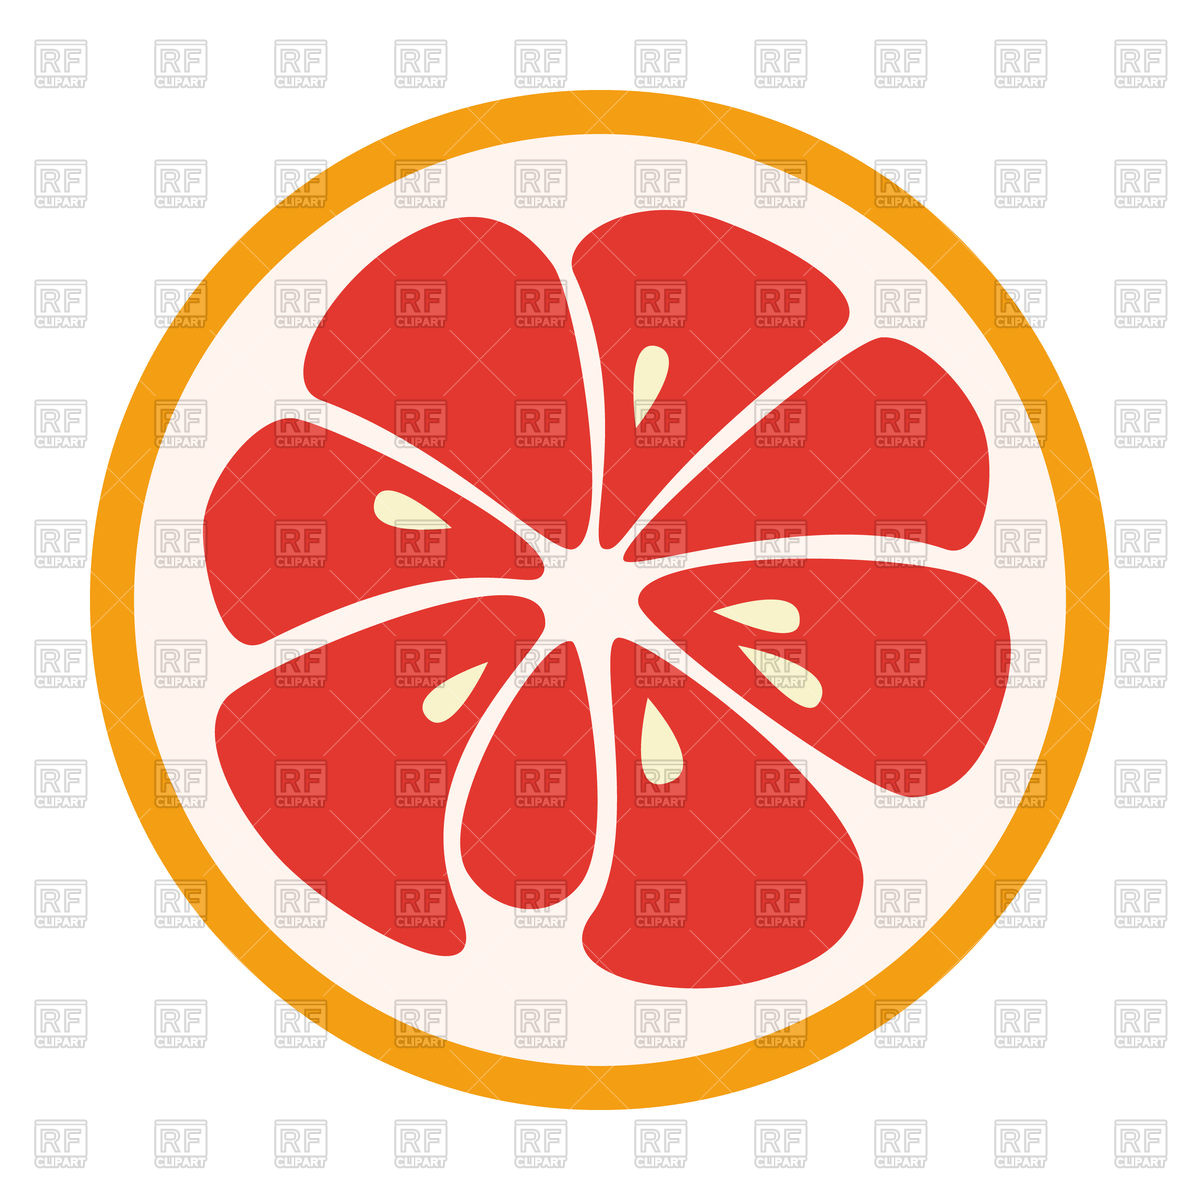 Red grapefruit icon Vector Image #101414.